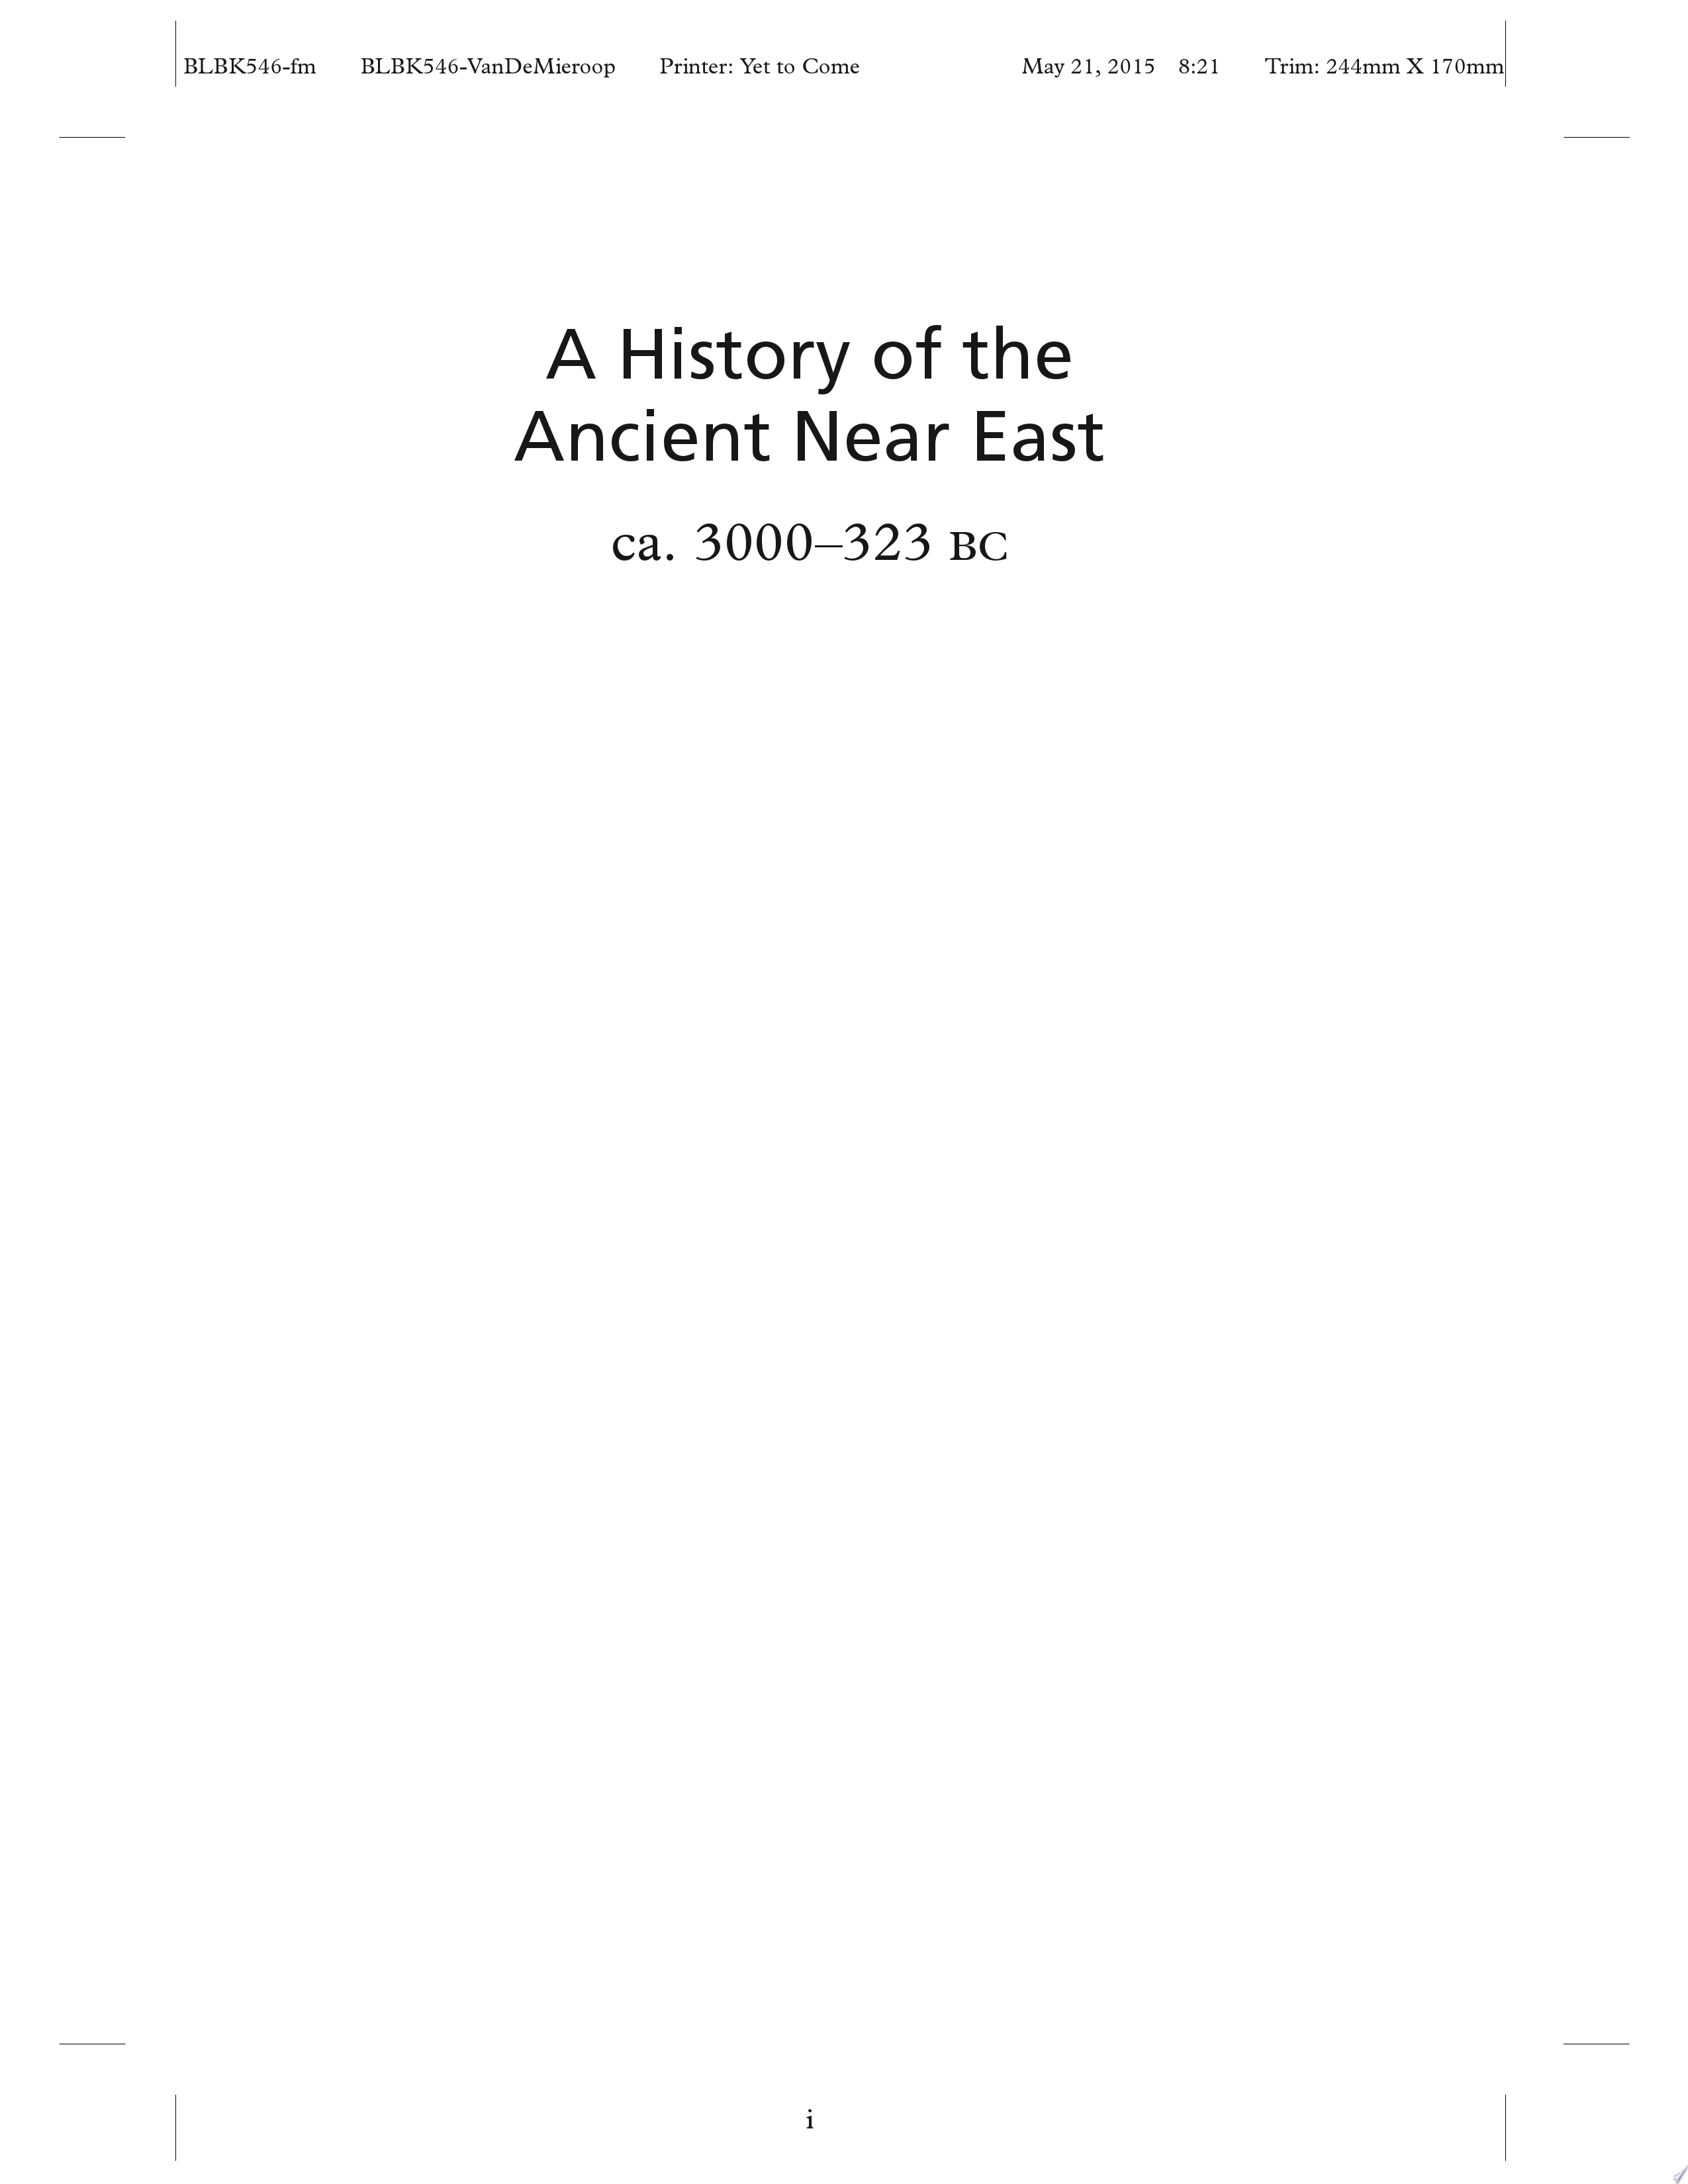 A History of the Ancient Near East  Ca  3000 323 BC